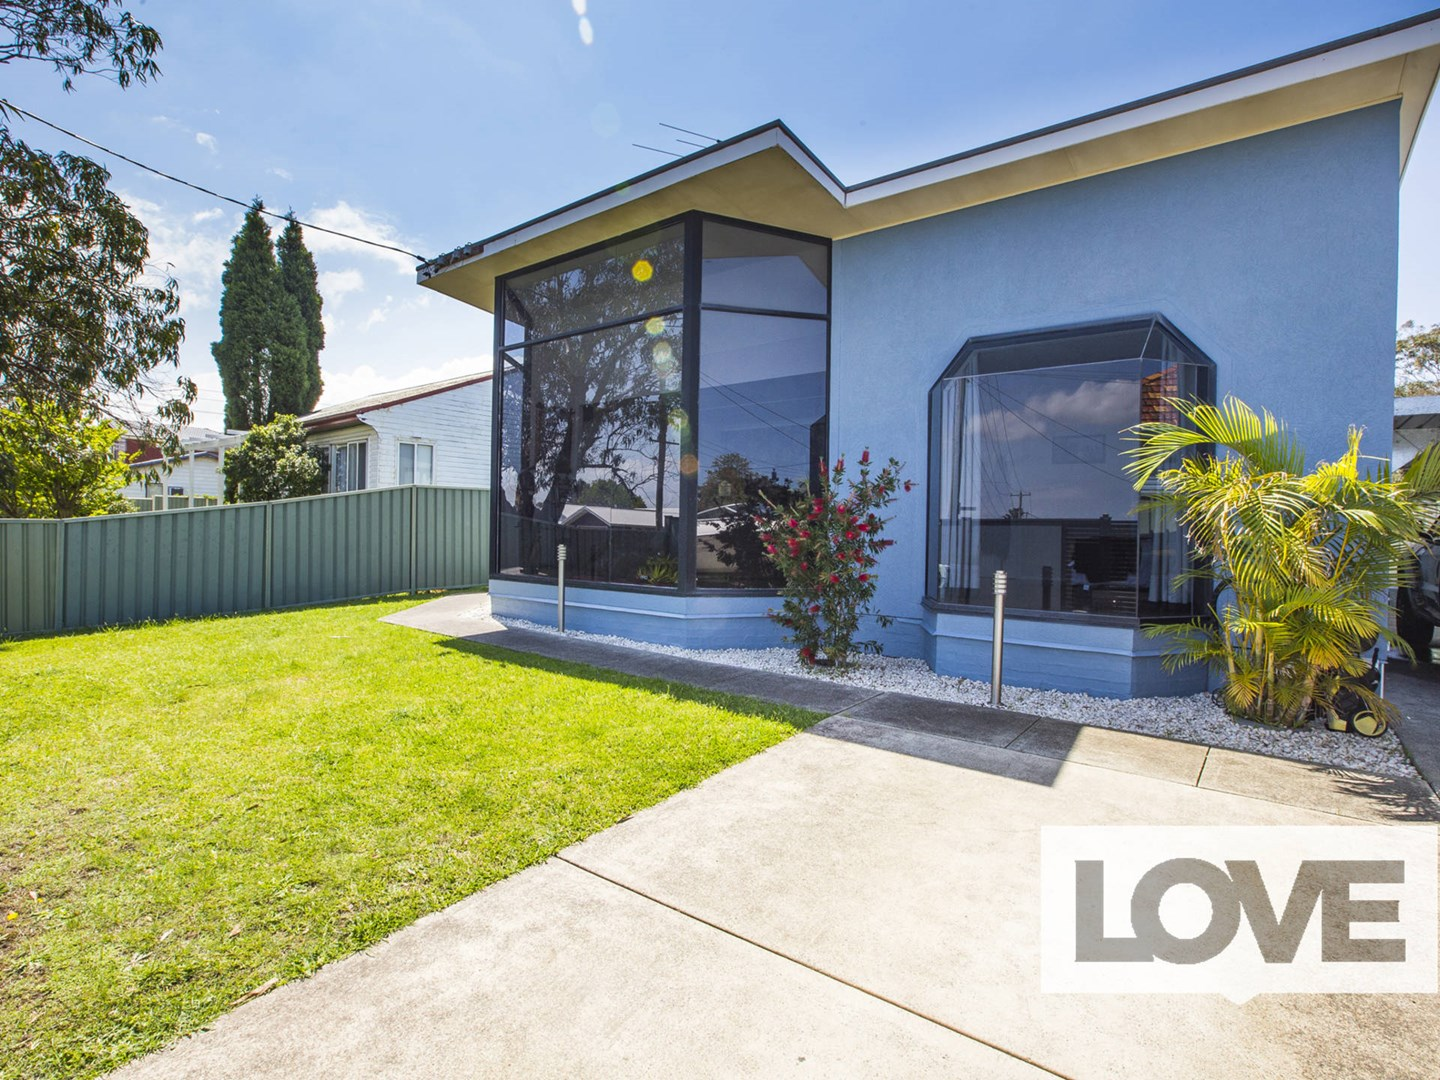 Property Report for 83 Bayview Street, Warners Bay NSW 2282